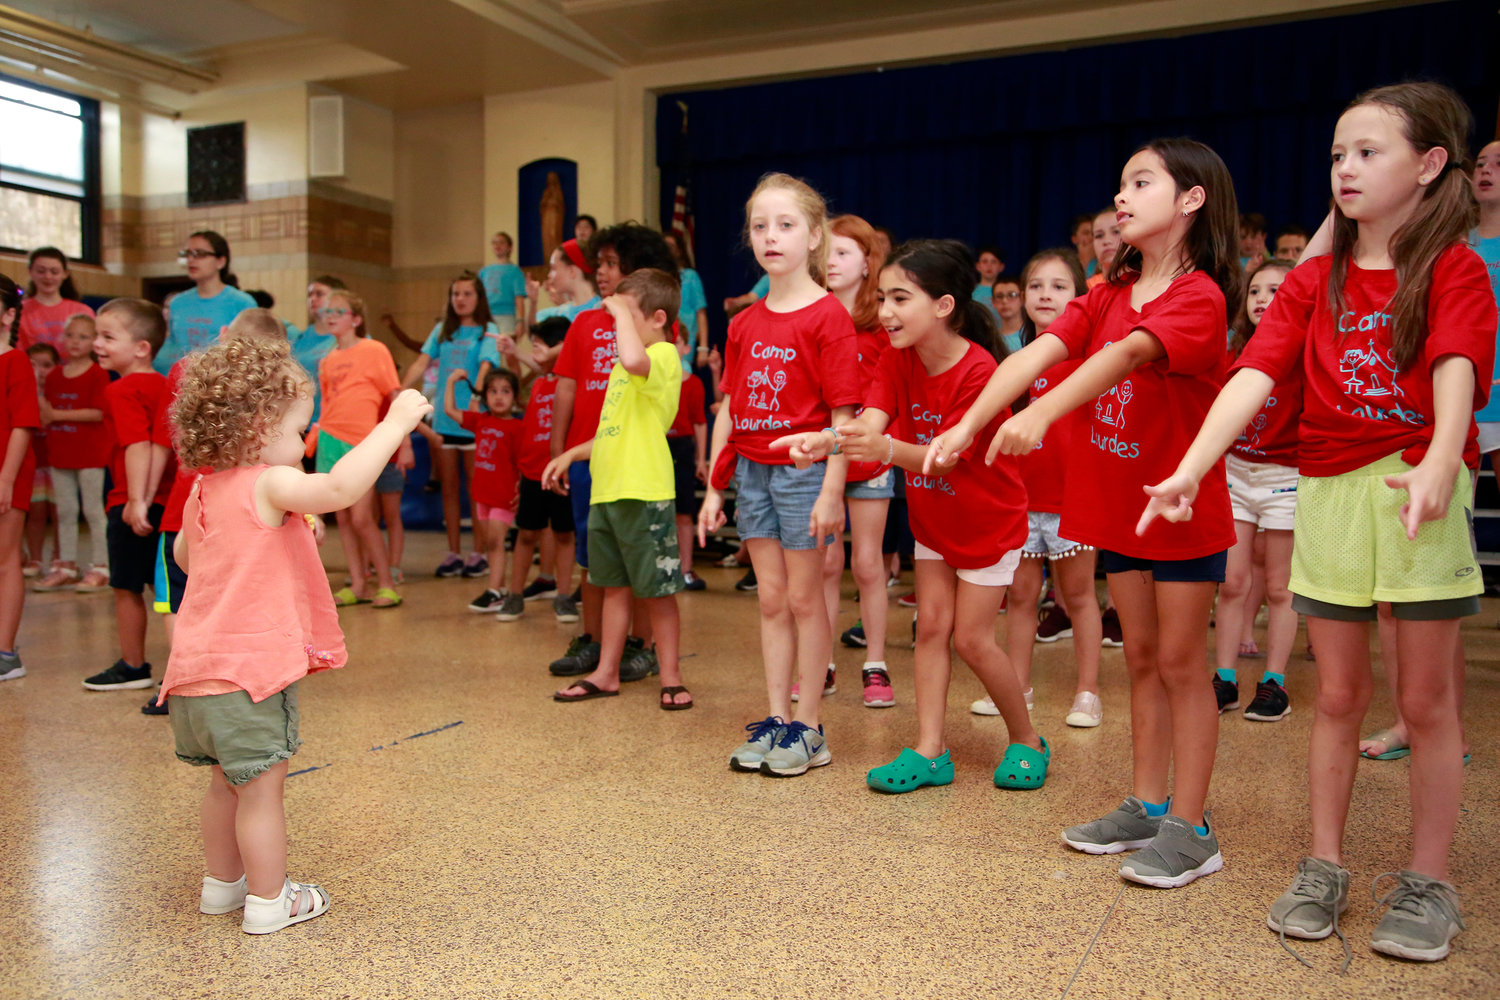 Two-year-old Ella Kardon, left, took part in a musical rehearsal at Camp Lourdes' annual celebration at Our Lady of Lourdes parish on July 10.